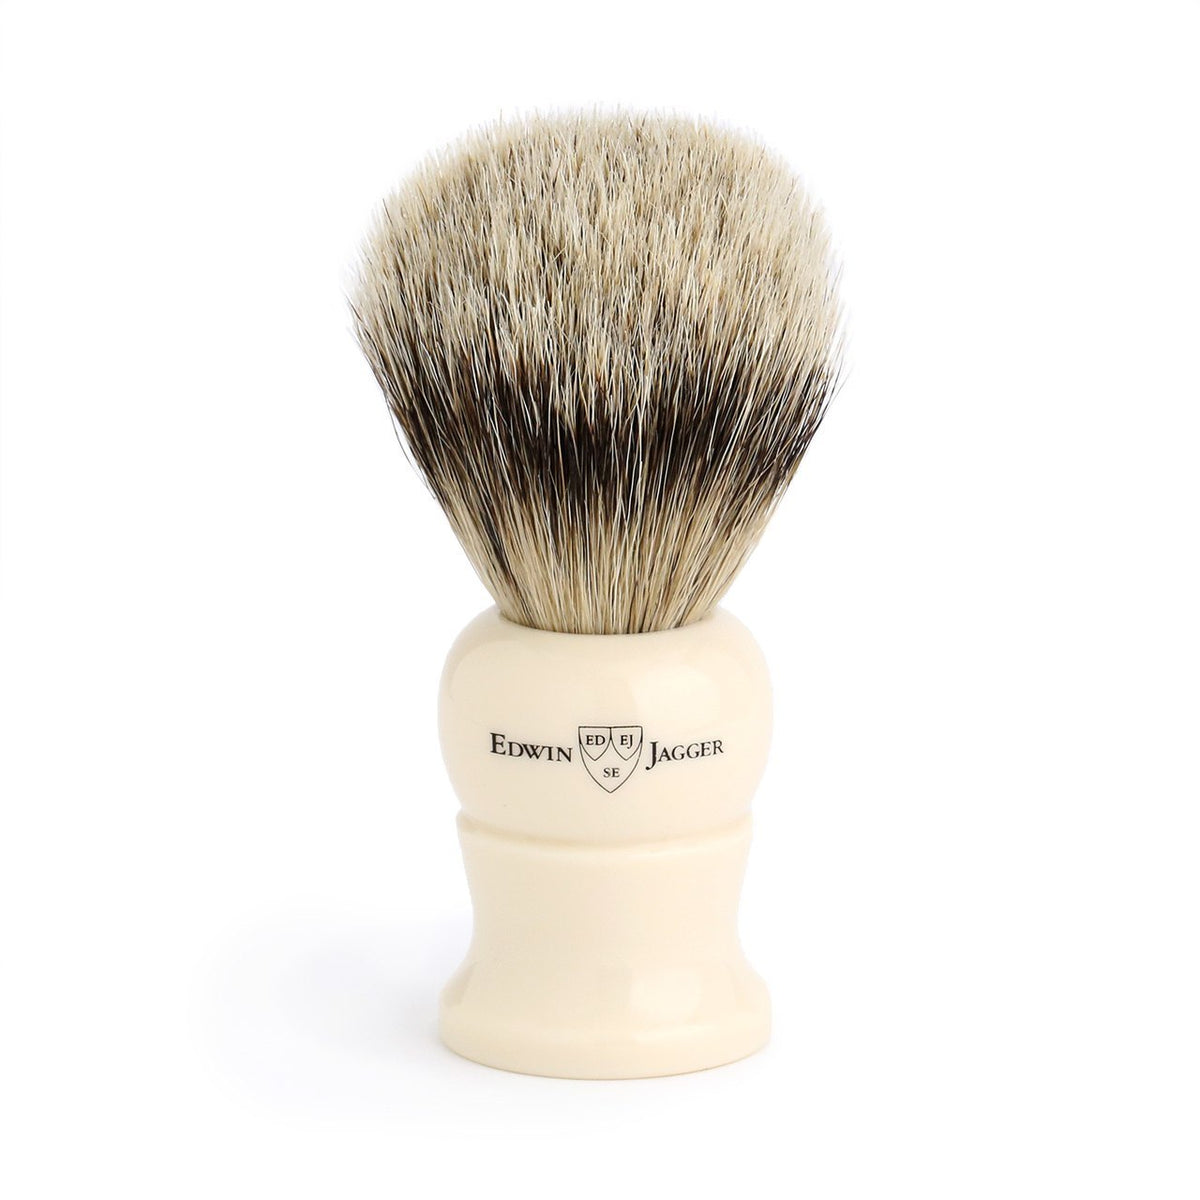 Edwin Jagger Super Badger Medium Shaving Brush - Imitation Ivory